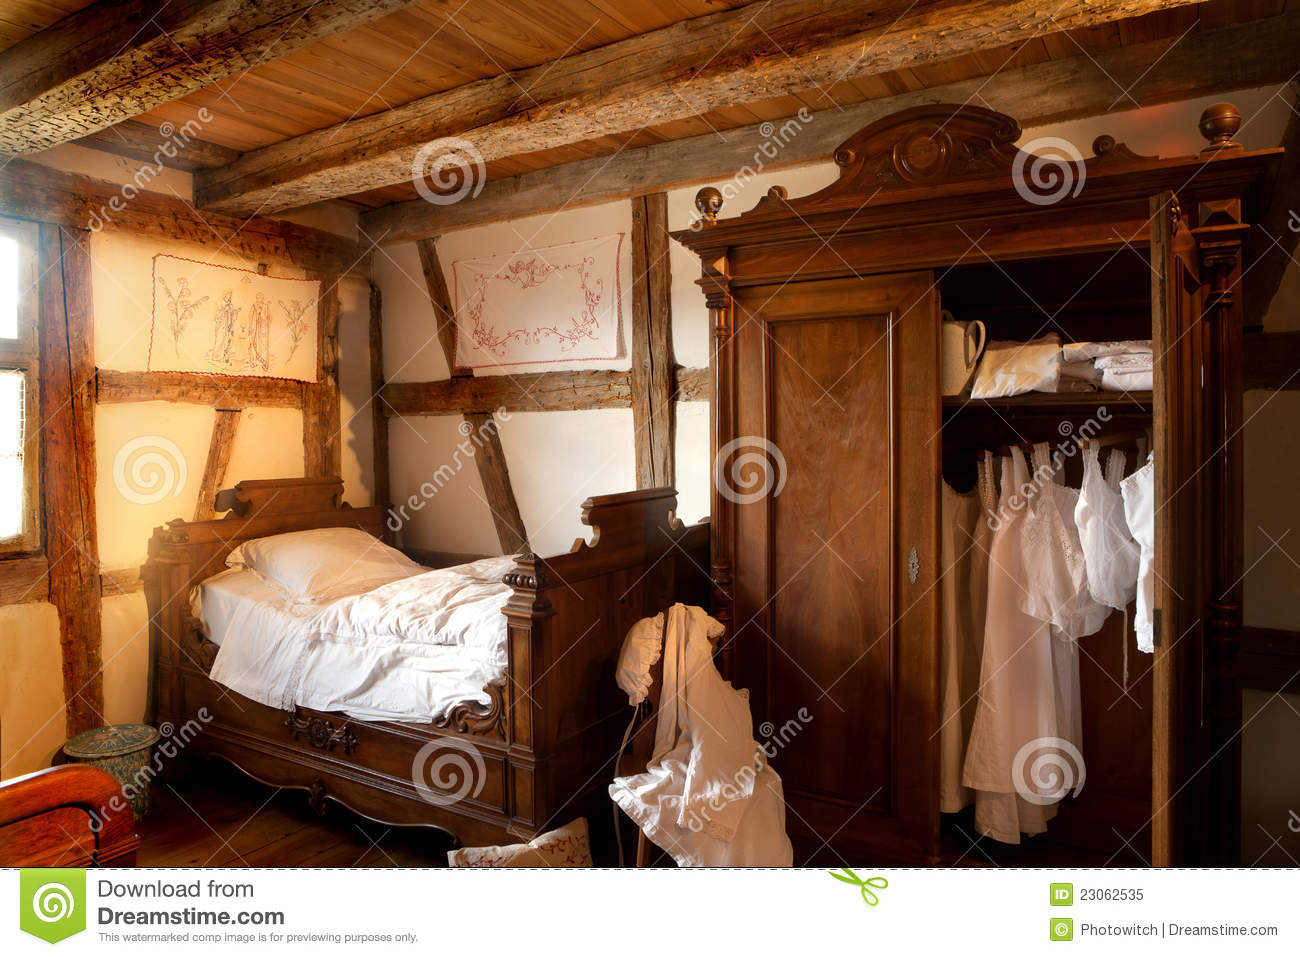 19th century bedroom stock image image of home interior 23062535 - Image bed room ...